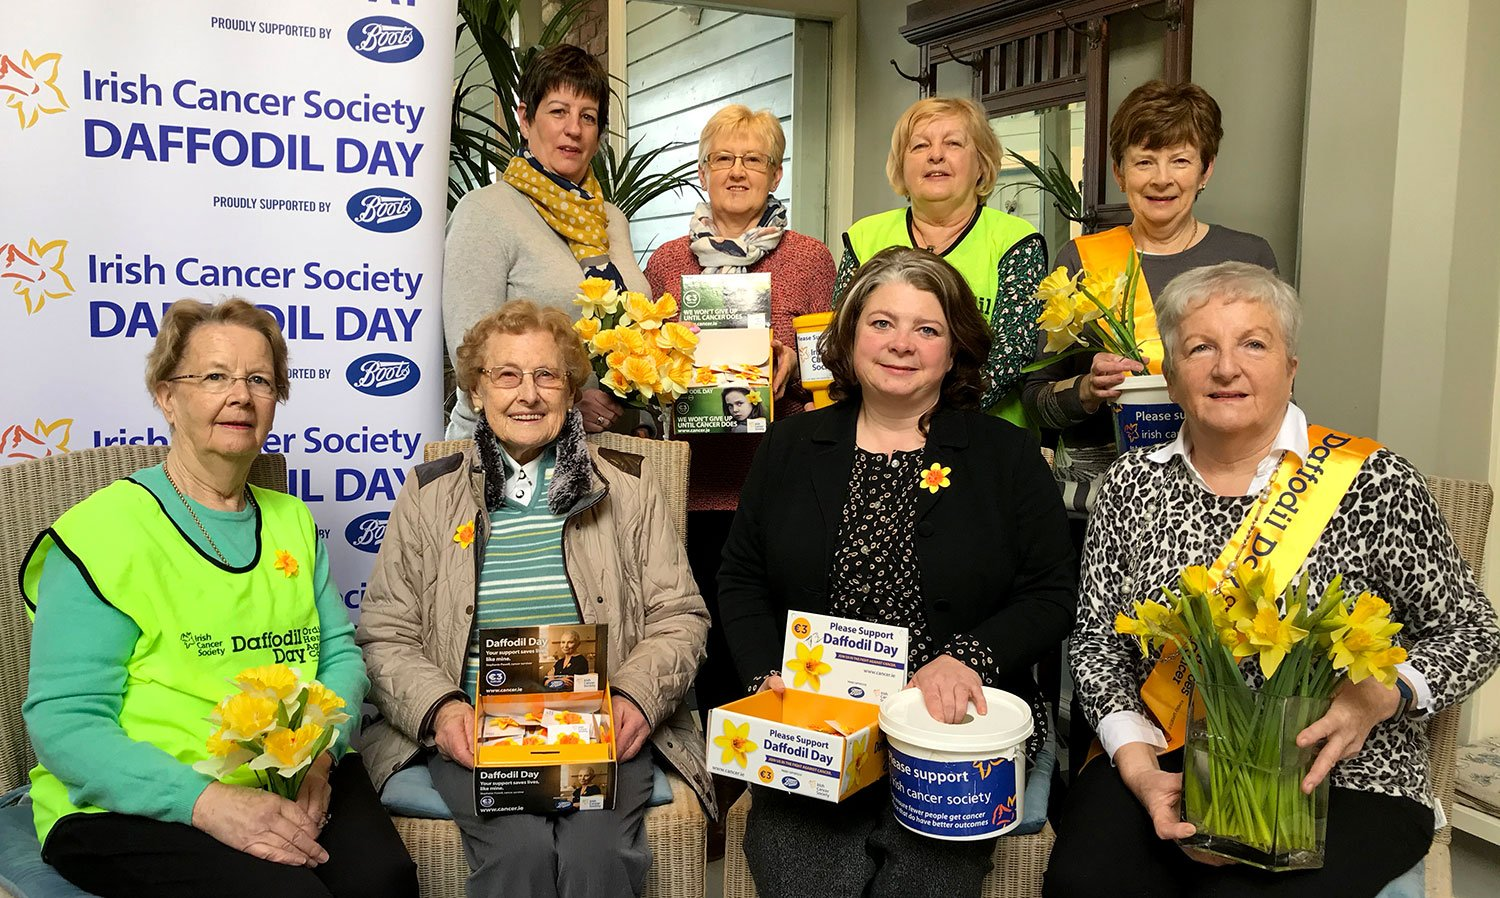 Daffodil_Day-2020-Please-Support